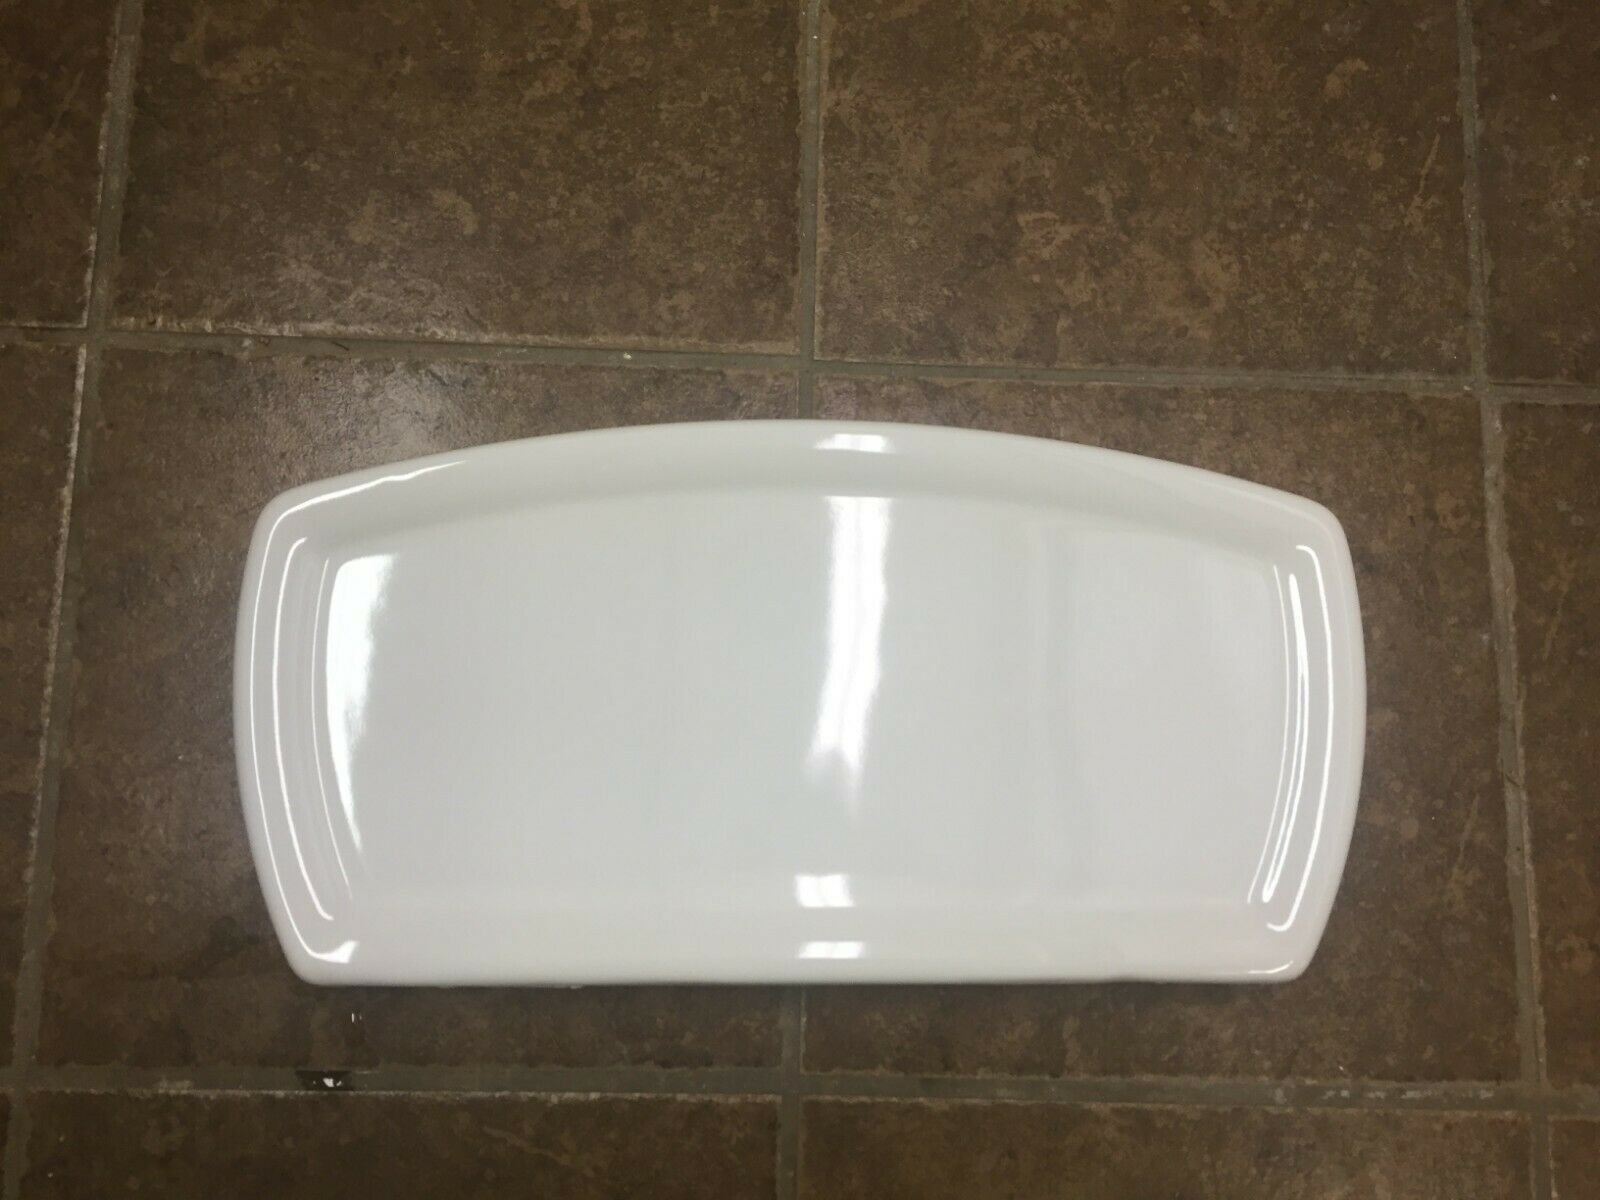 American Standard 735128 White Toilet Tank Lid With Chip On Edge Toilets Ideas Of Toilets Toilets In 2020 Toilet Tank Toilet Tank Lids American Standard